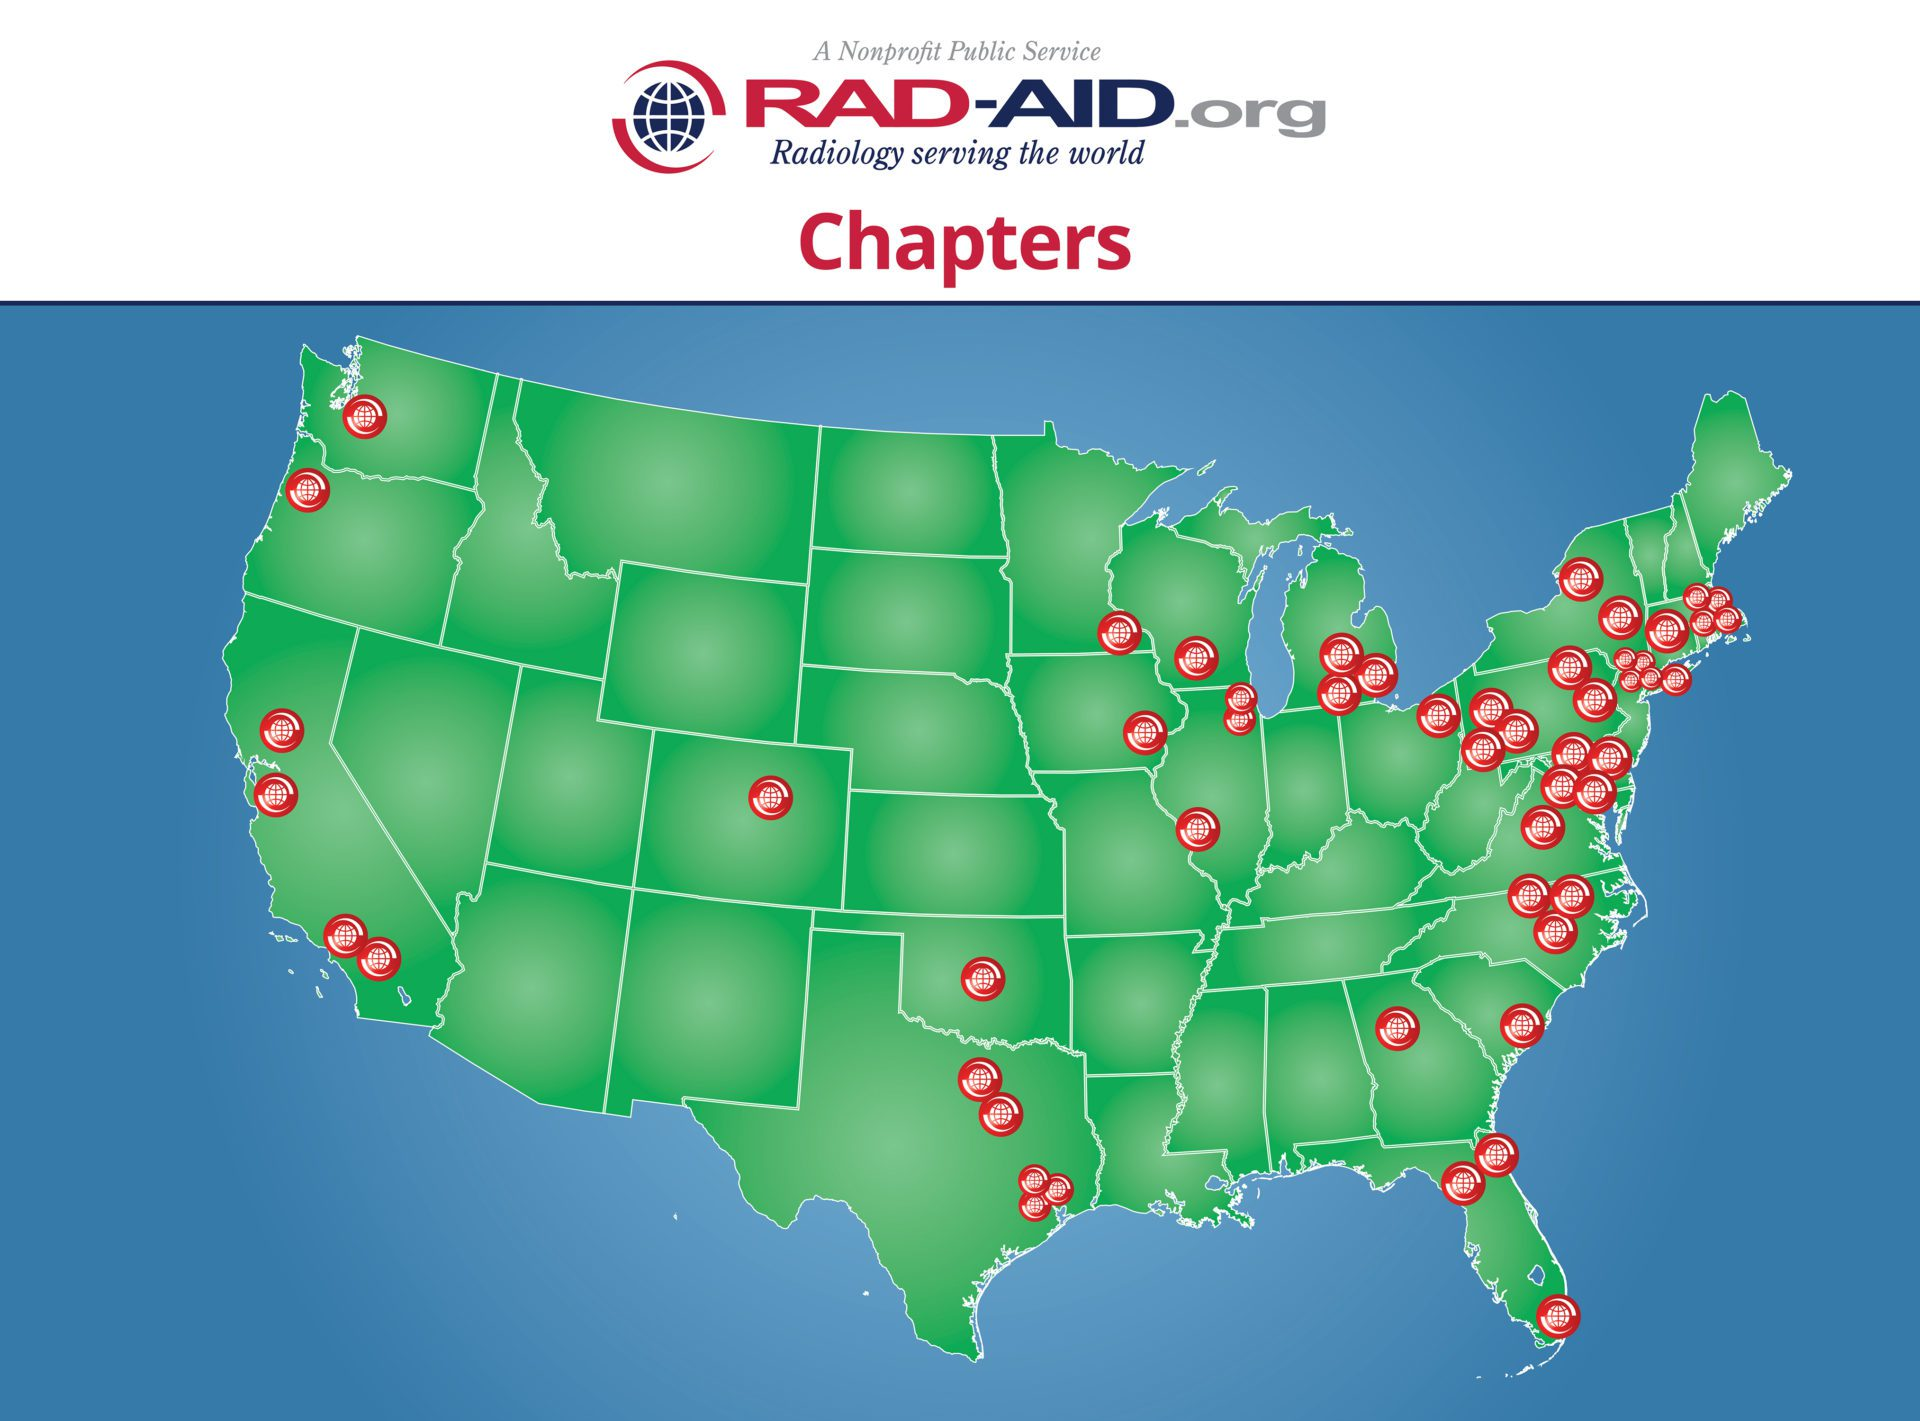 chapter map-FINAL-y16m08d12